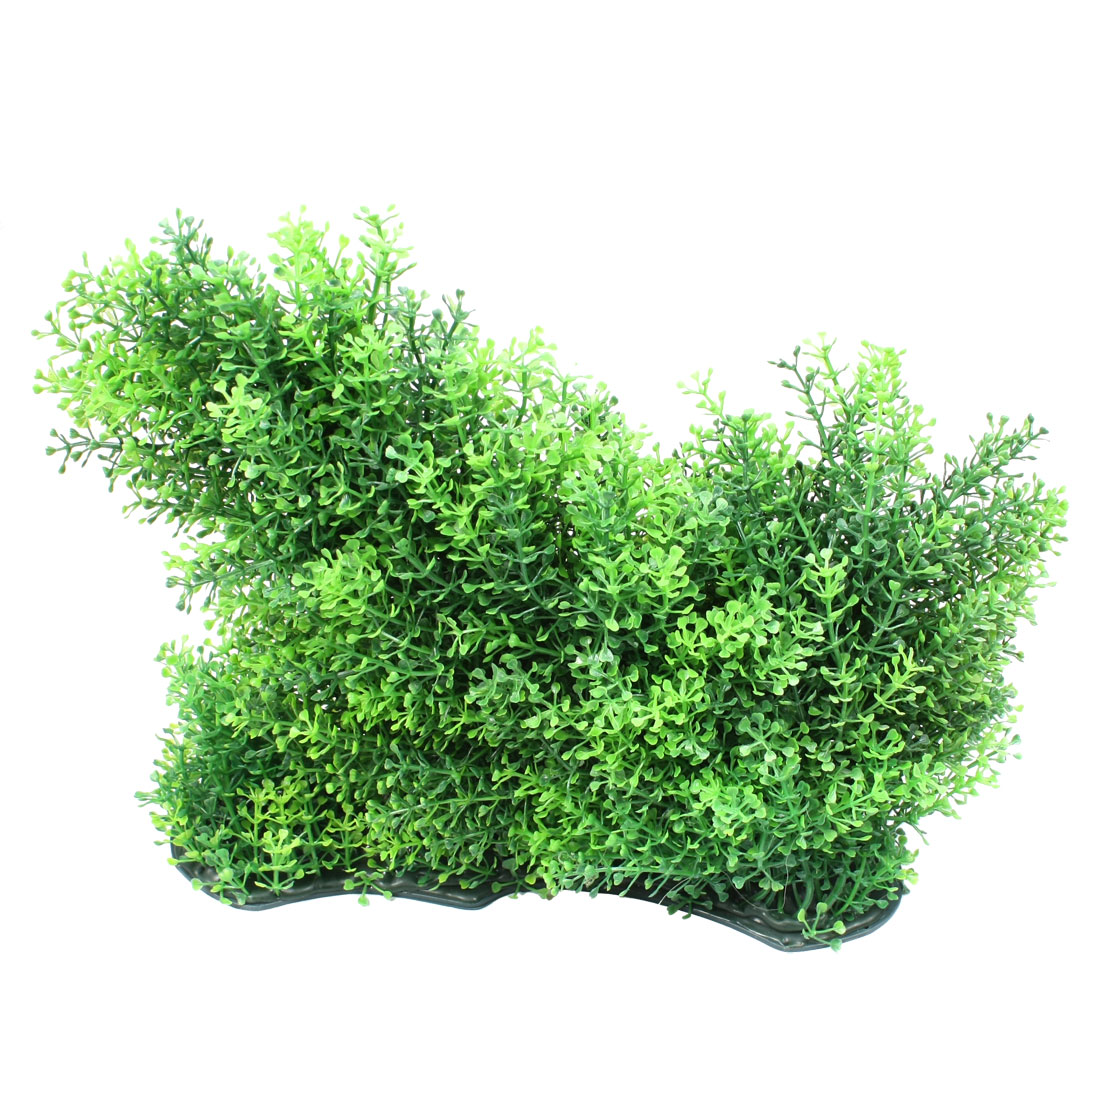 "Green 9.4"" Underwater Aquascaping Plastic Plant for Aquarium Tank"